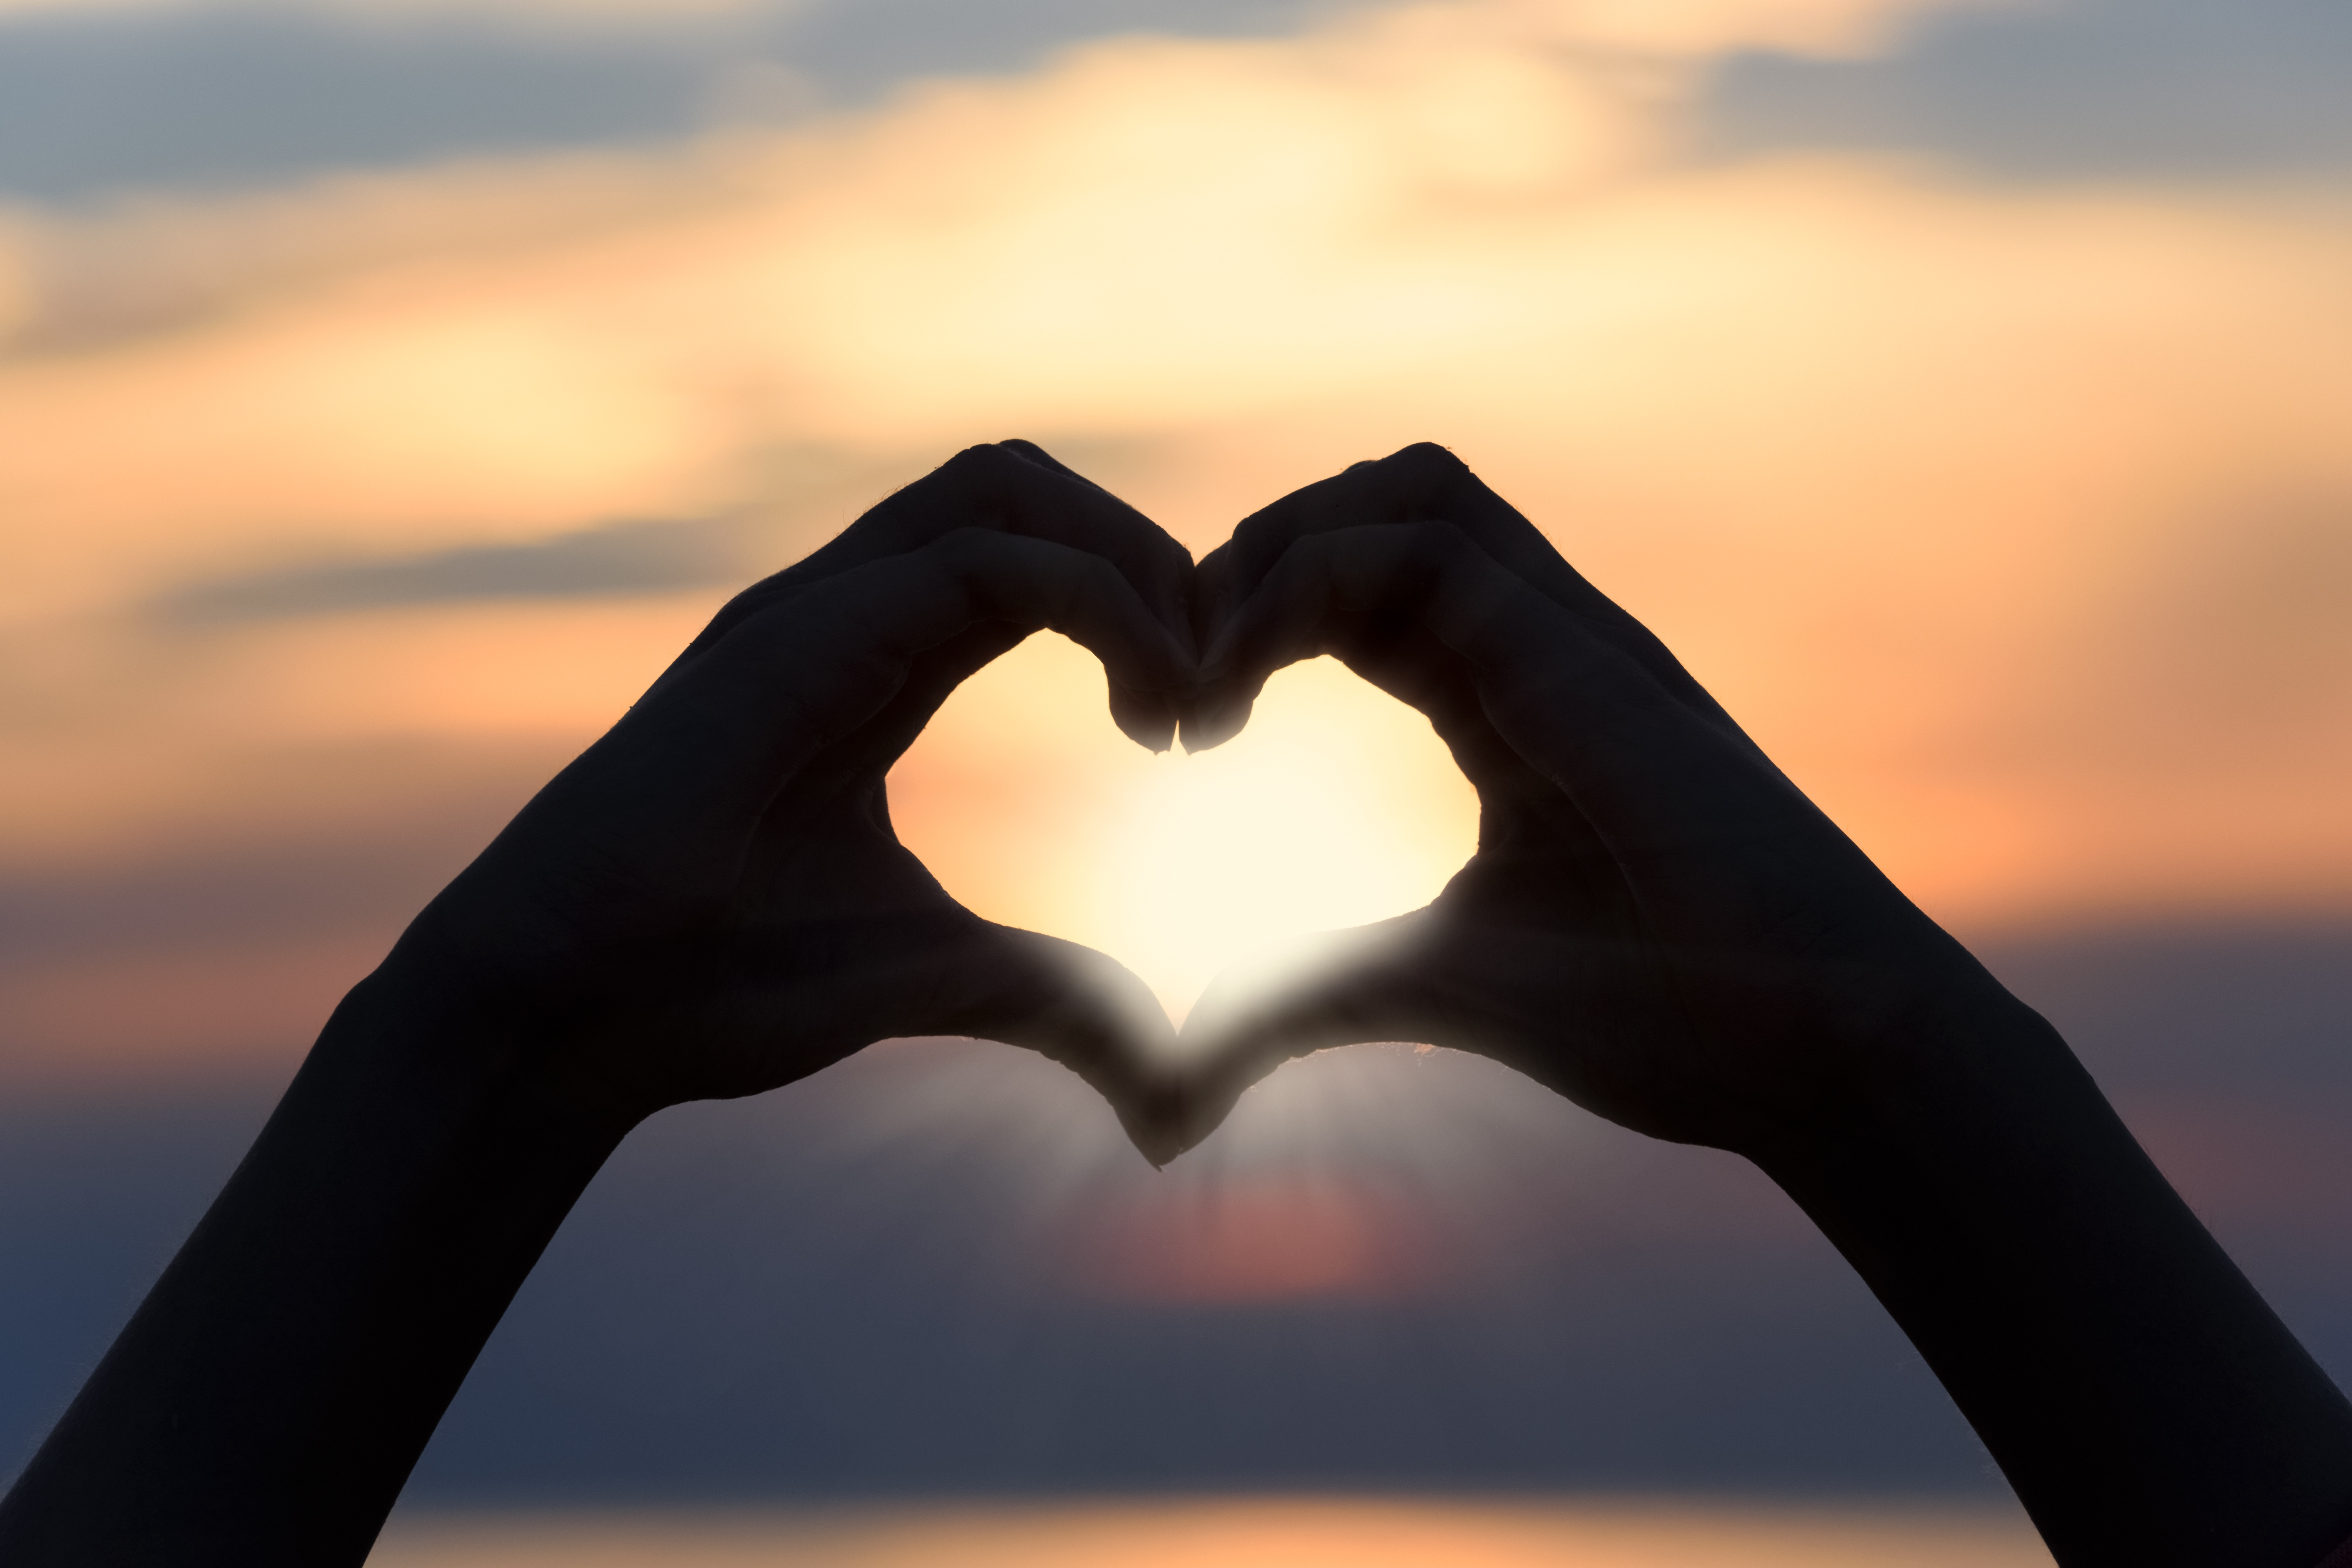 154989 download wallpaper Love, Heart, Hands, Sunlight, Romance screensavers and pictures for free